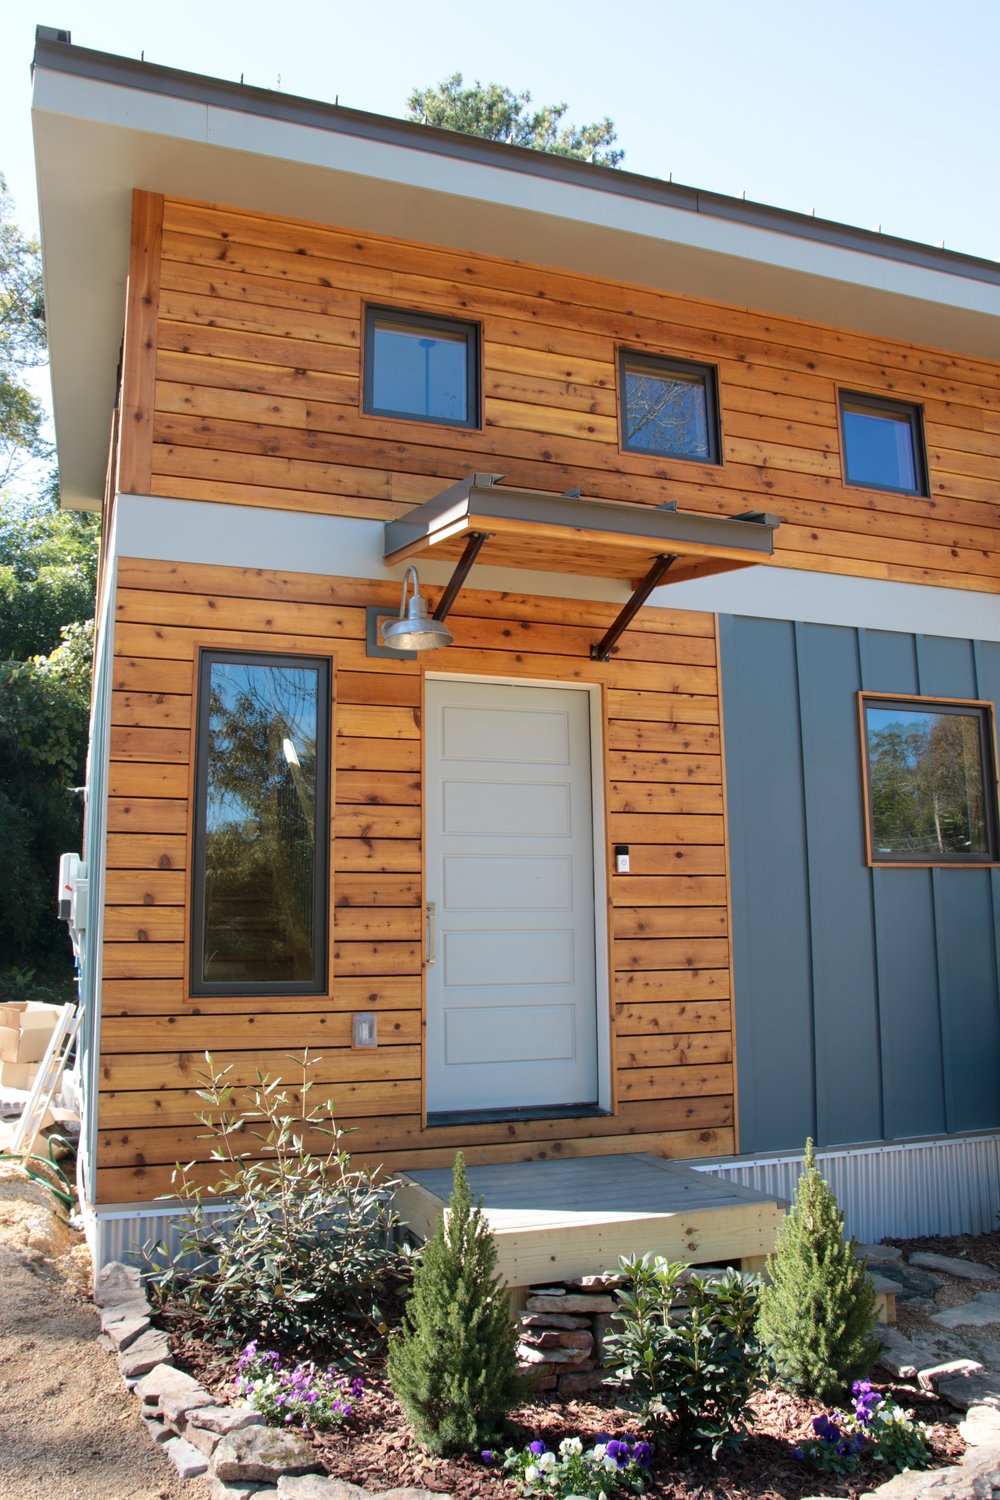 Urban Micro Home by Wind River Tiny Homes - cedar siding, cedar rainscreen, contemporary design, rustic design